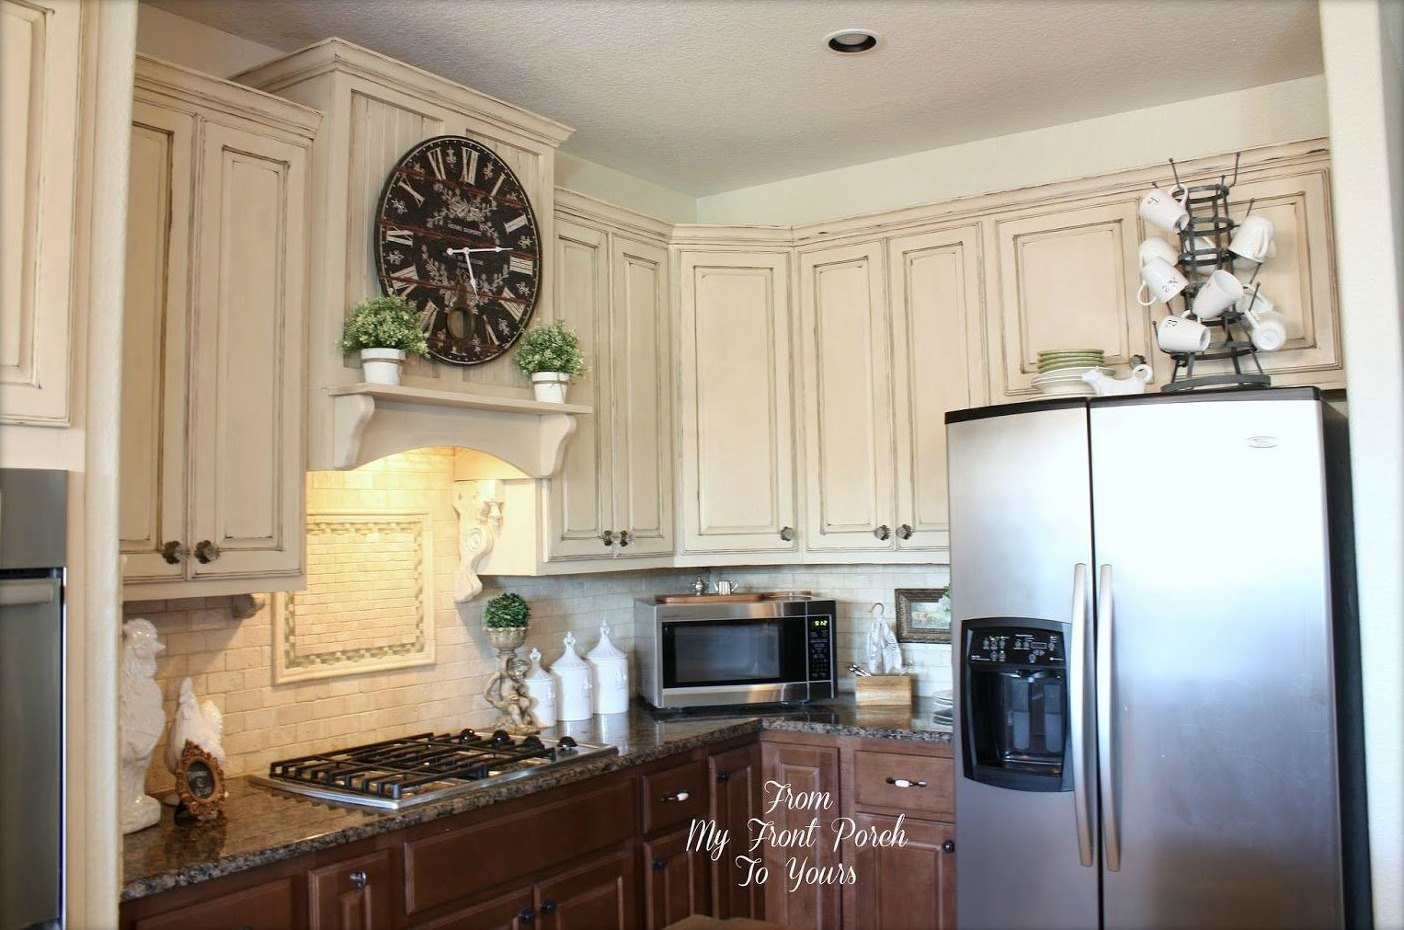 13 ways to instantly brighten up a boring kitchen hometalk for How to paint white cabinets